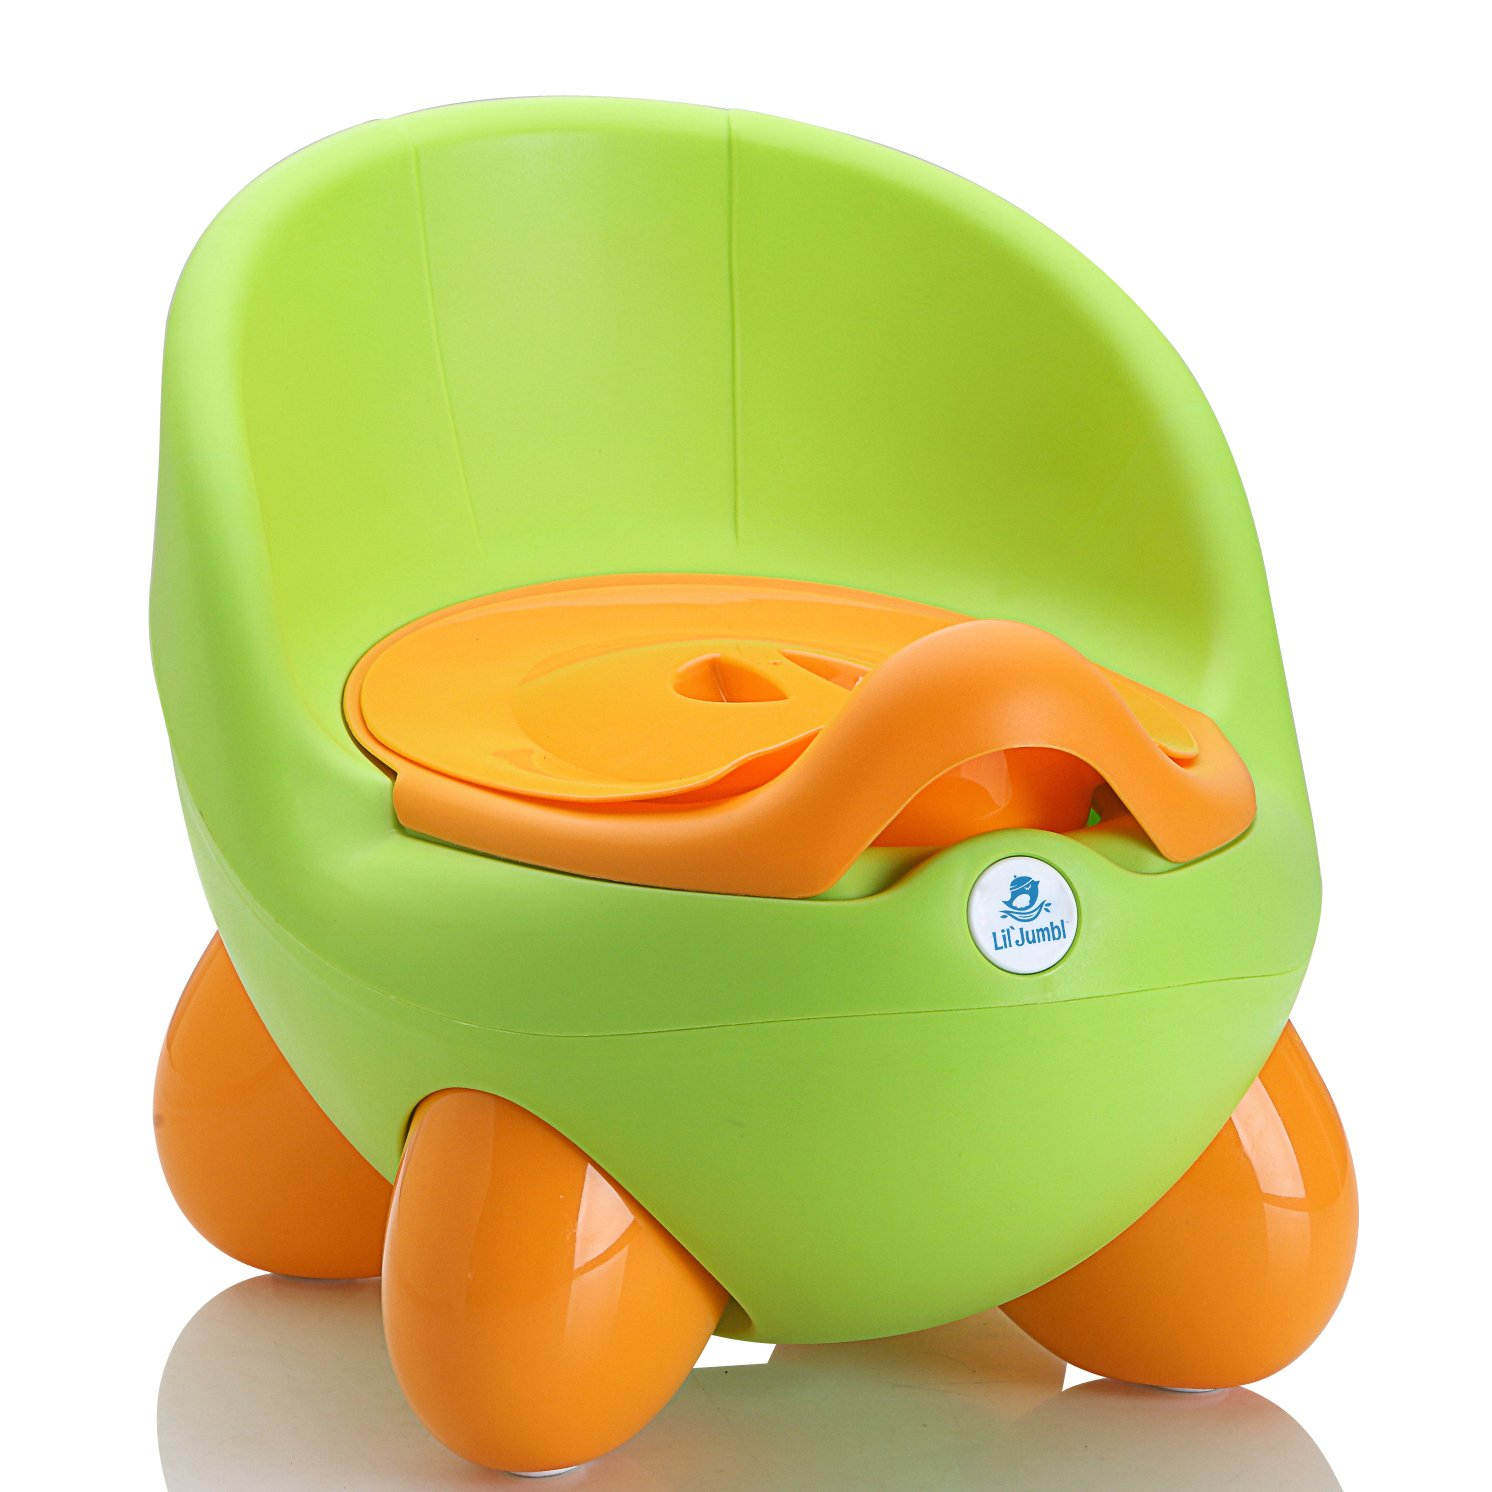 Baby Egg Chair Lil Jumbl Green Baby Egg Potty Amazon Lightning Deal